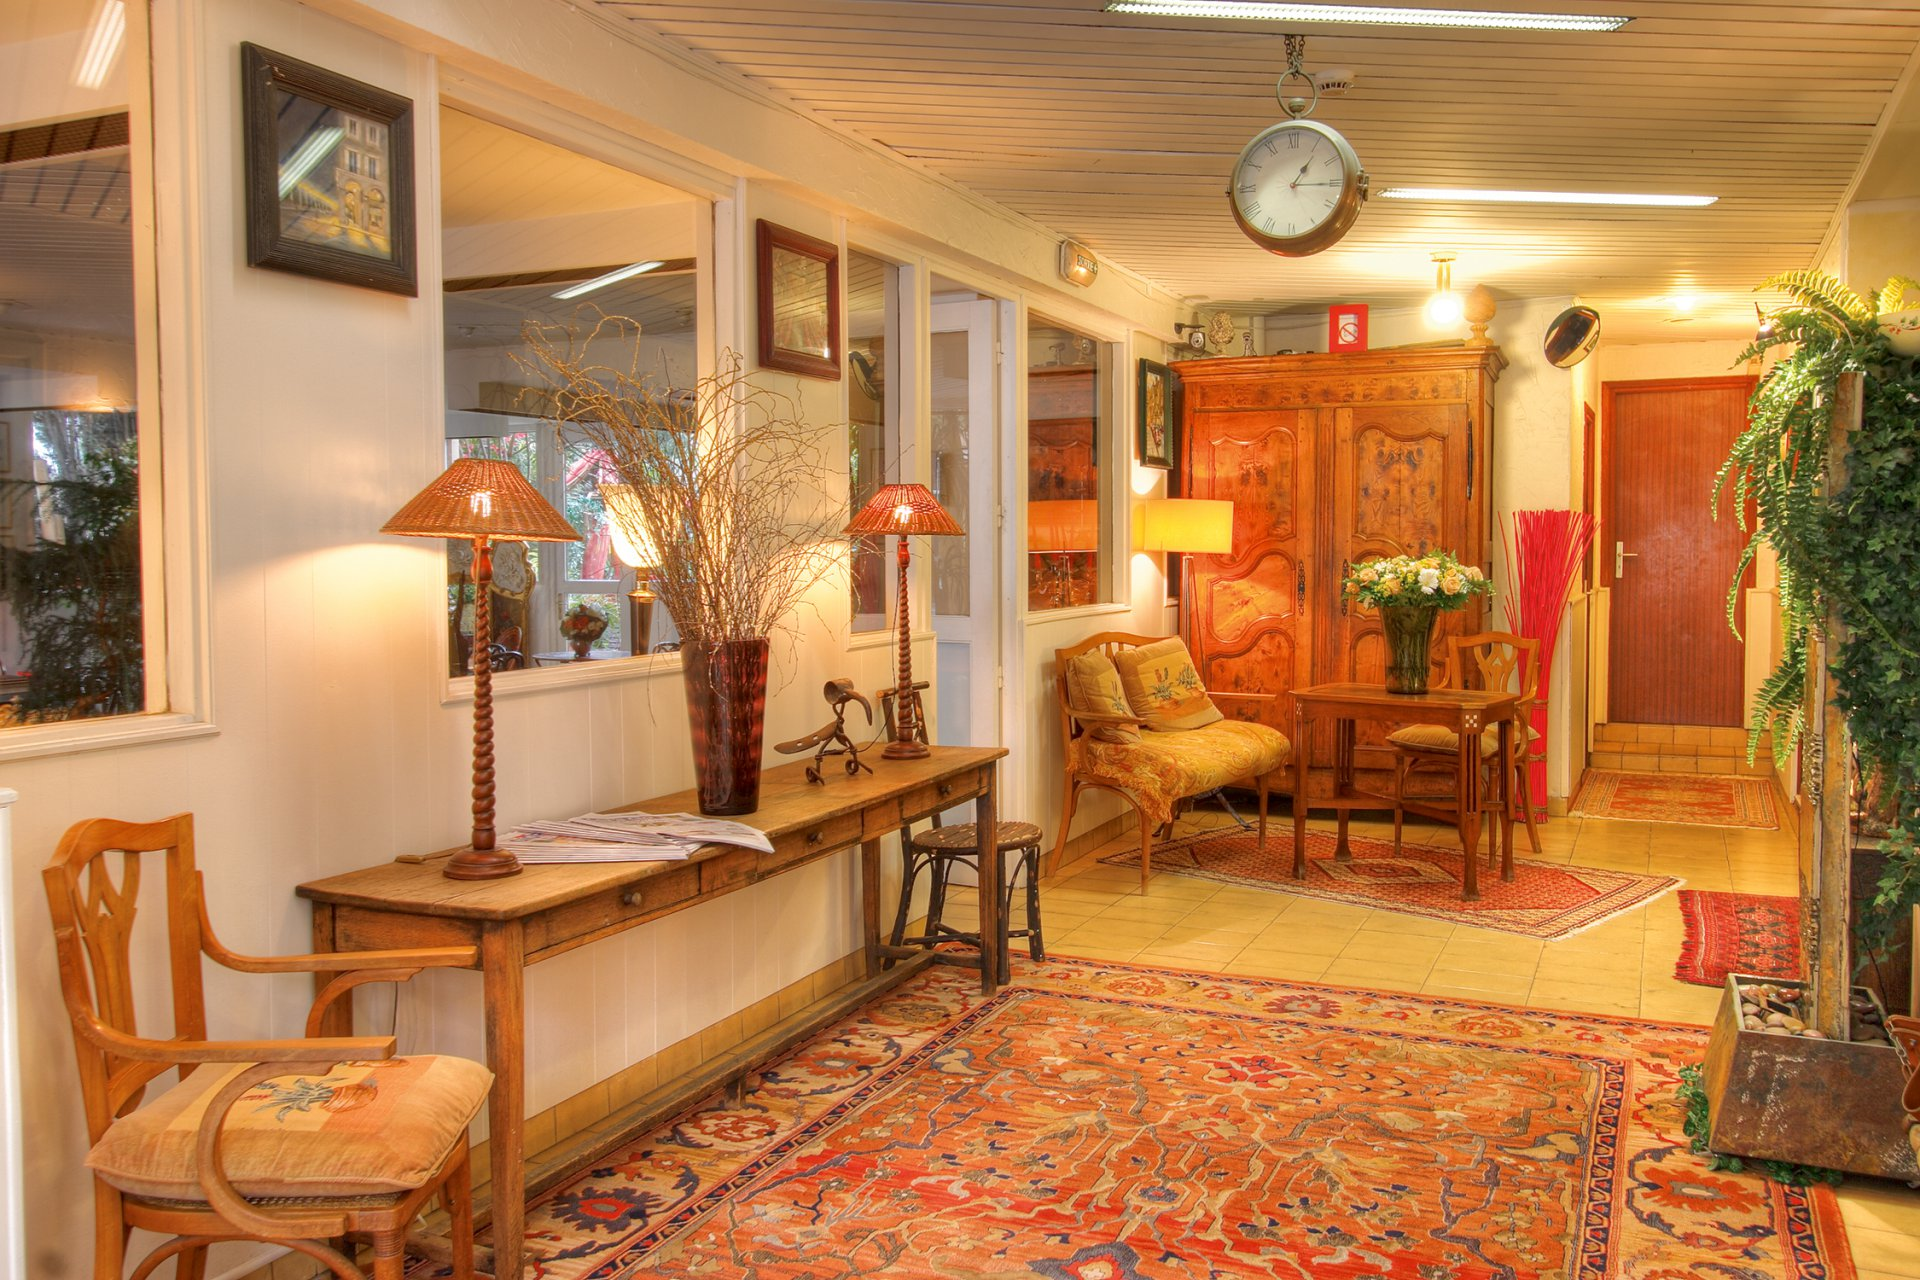 Hotel*** operation in town, 50m from beach